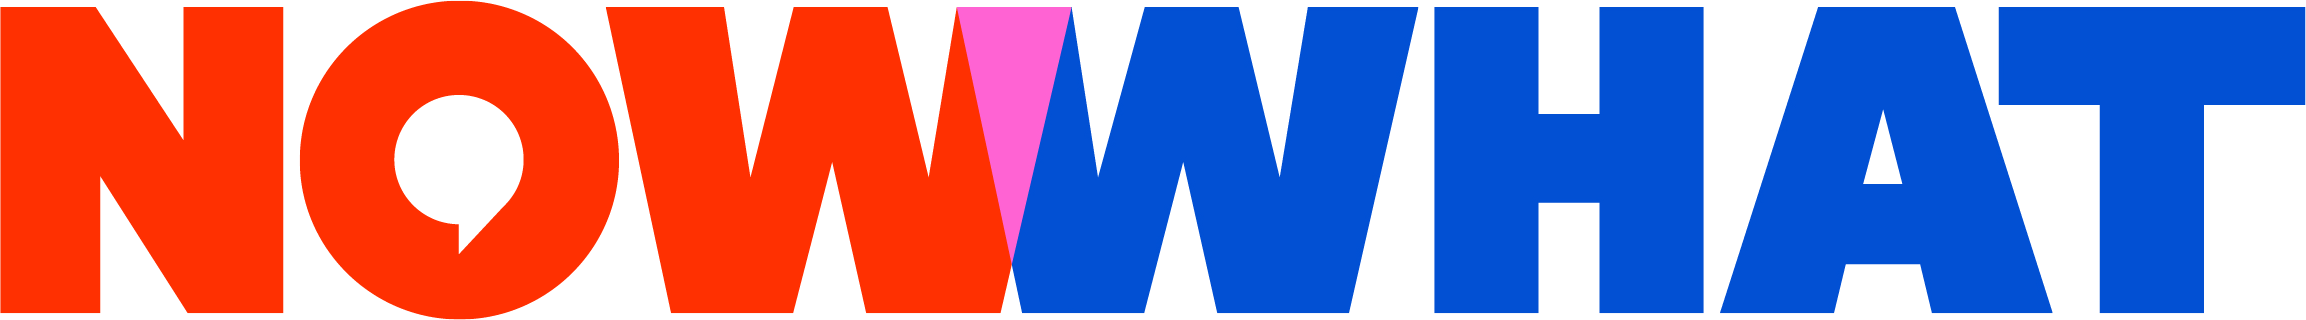 nowwhat-logo.png